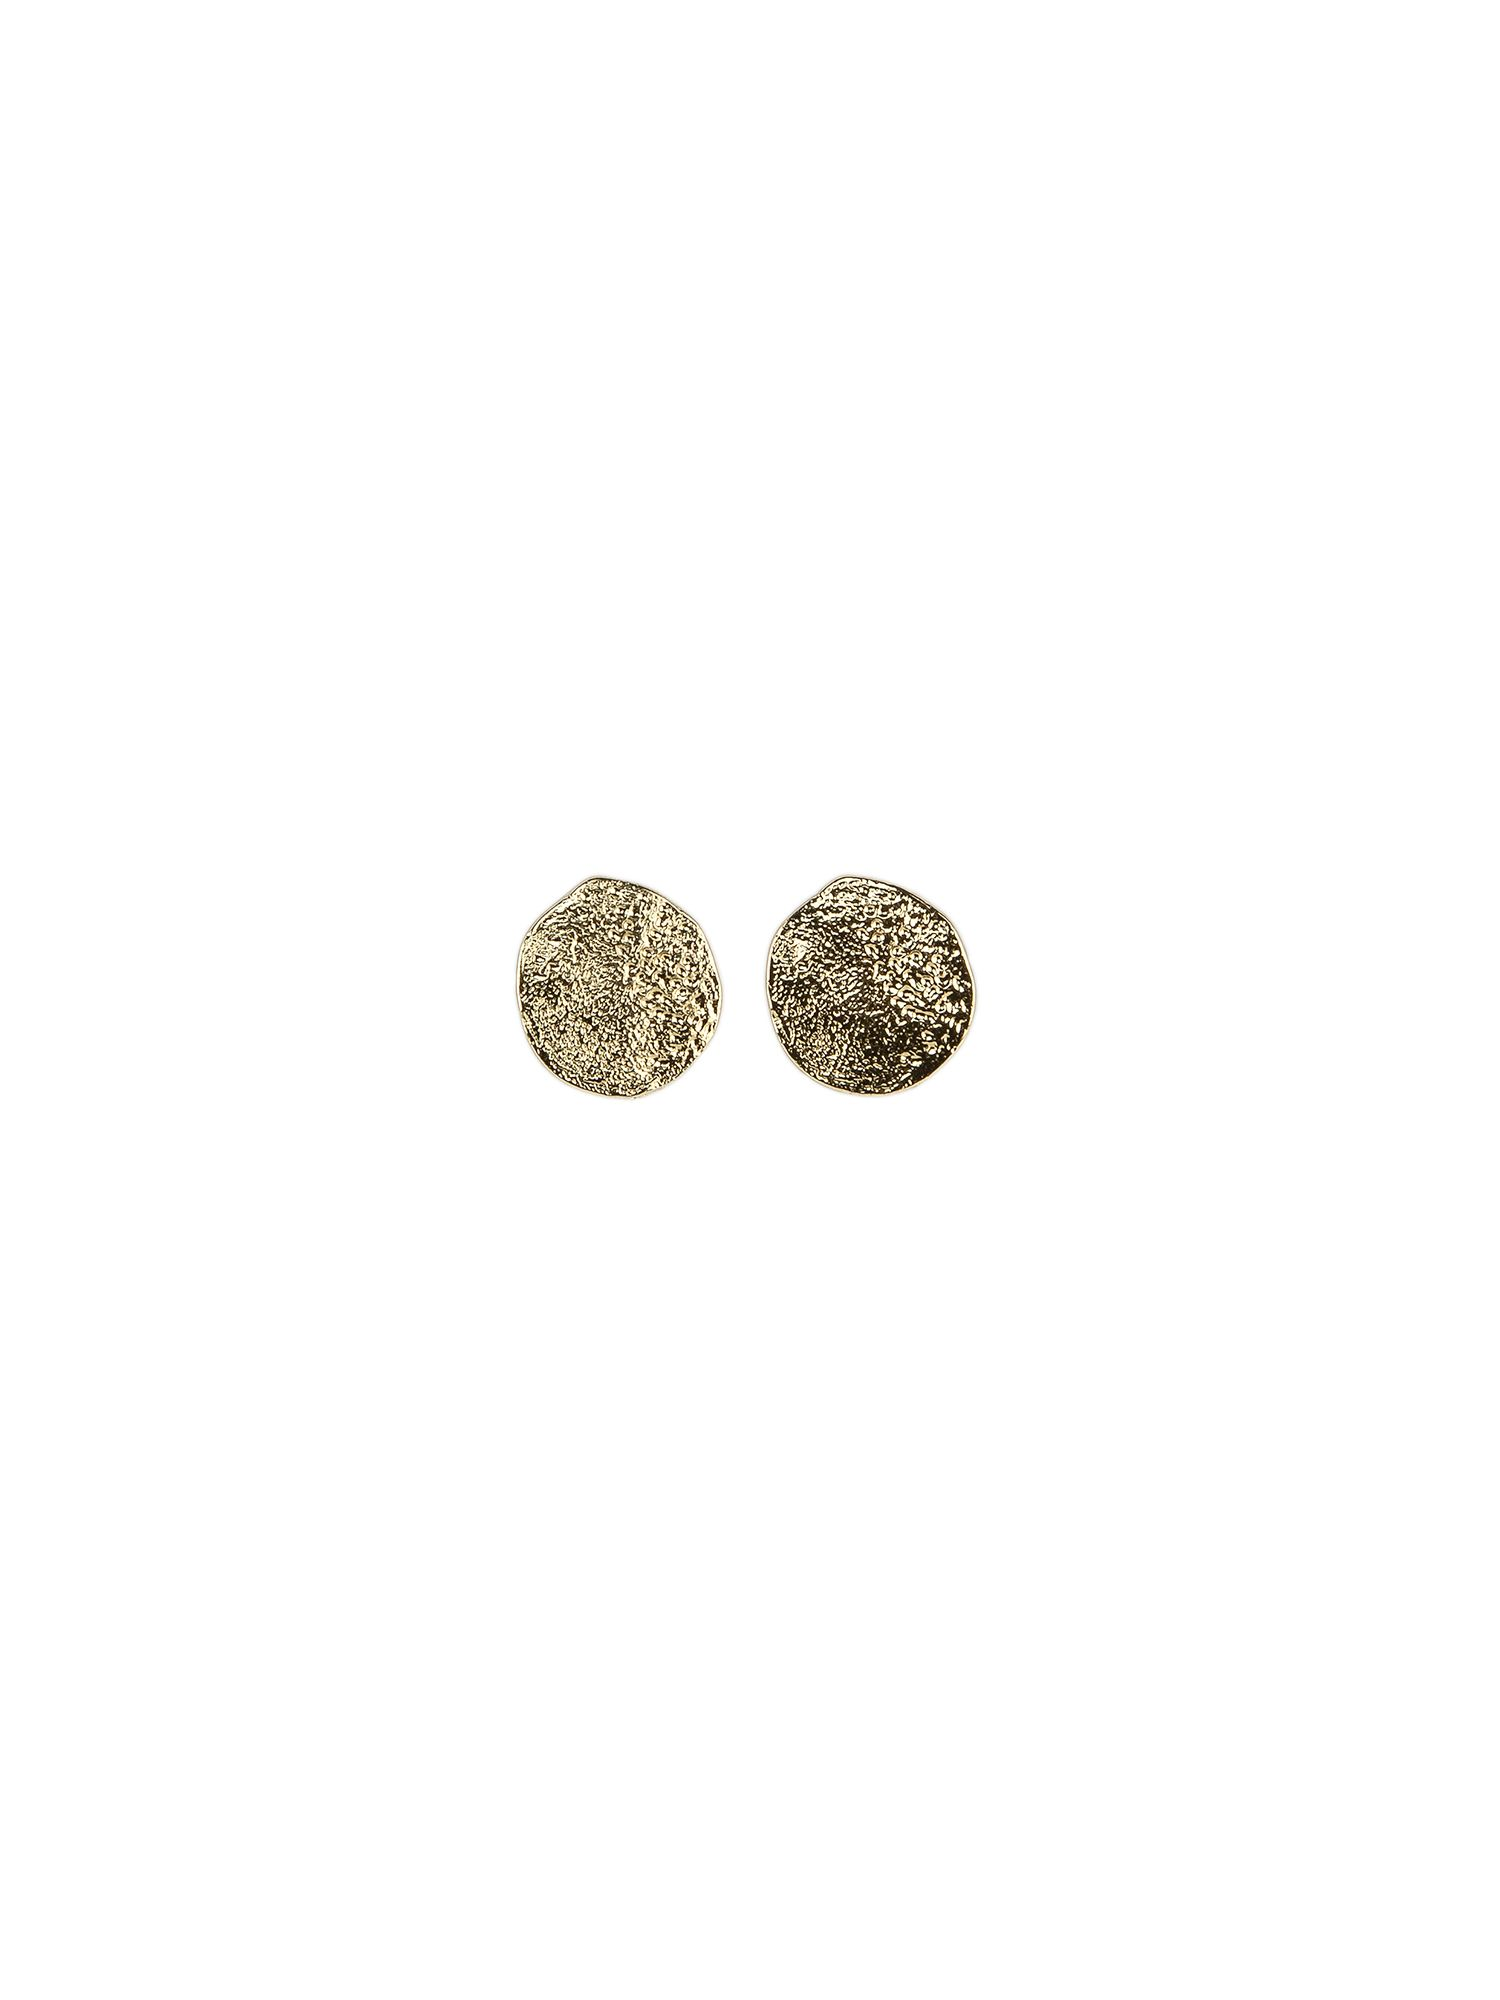 Tutti & Co Cave Earrings, Gold